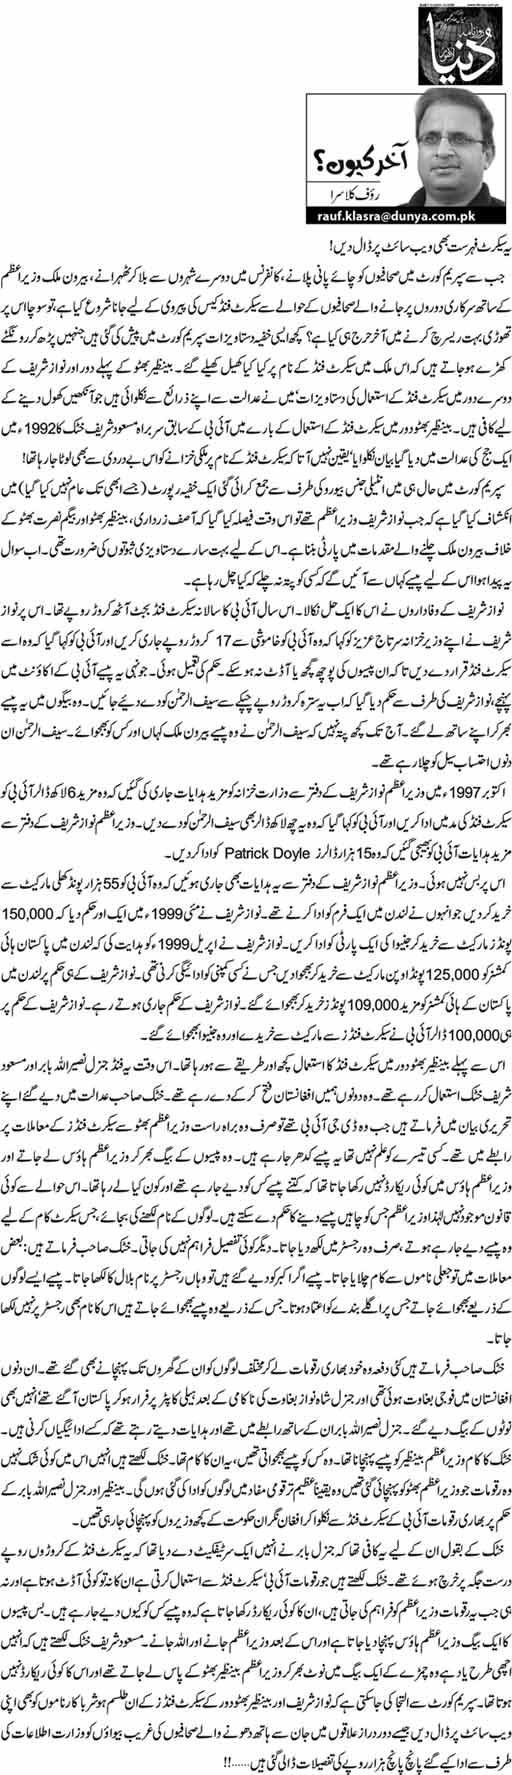 rauf klasra1 Ye Secret List Bhi Website Par Daal Dain by Rauf Klasra